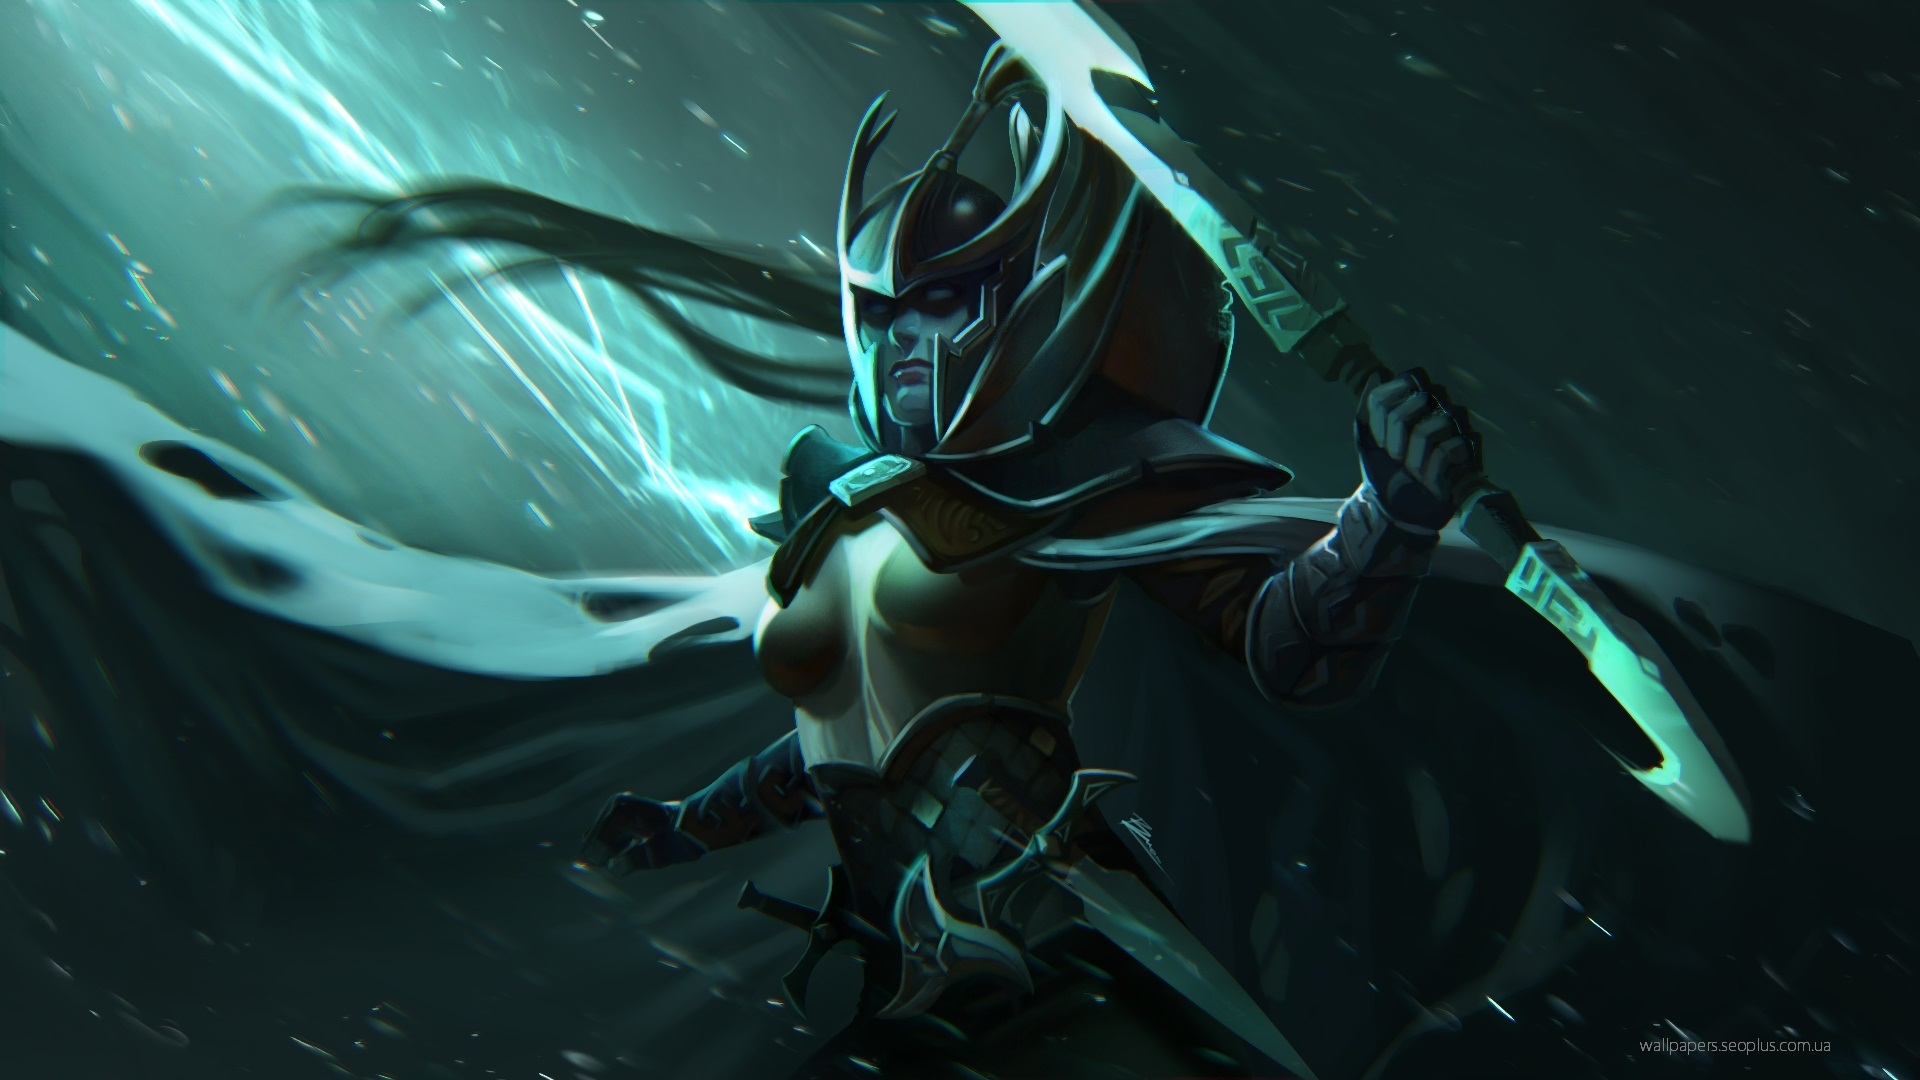 Phantom assassin,Mortred,Фантом Ассасин wallpapers Dota 2